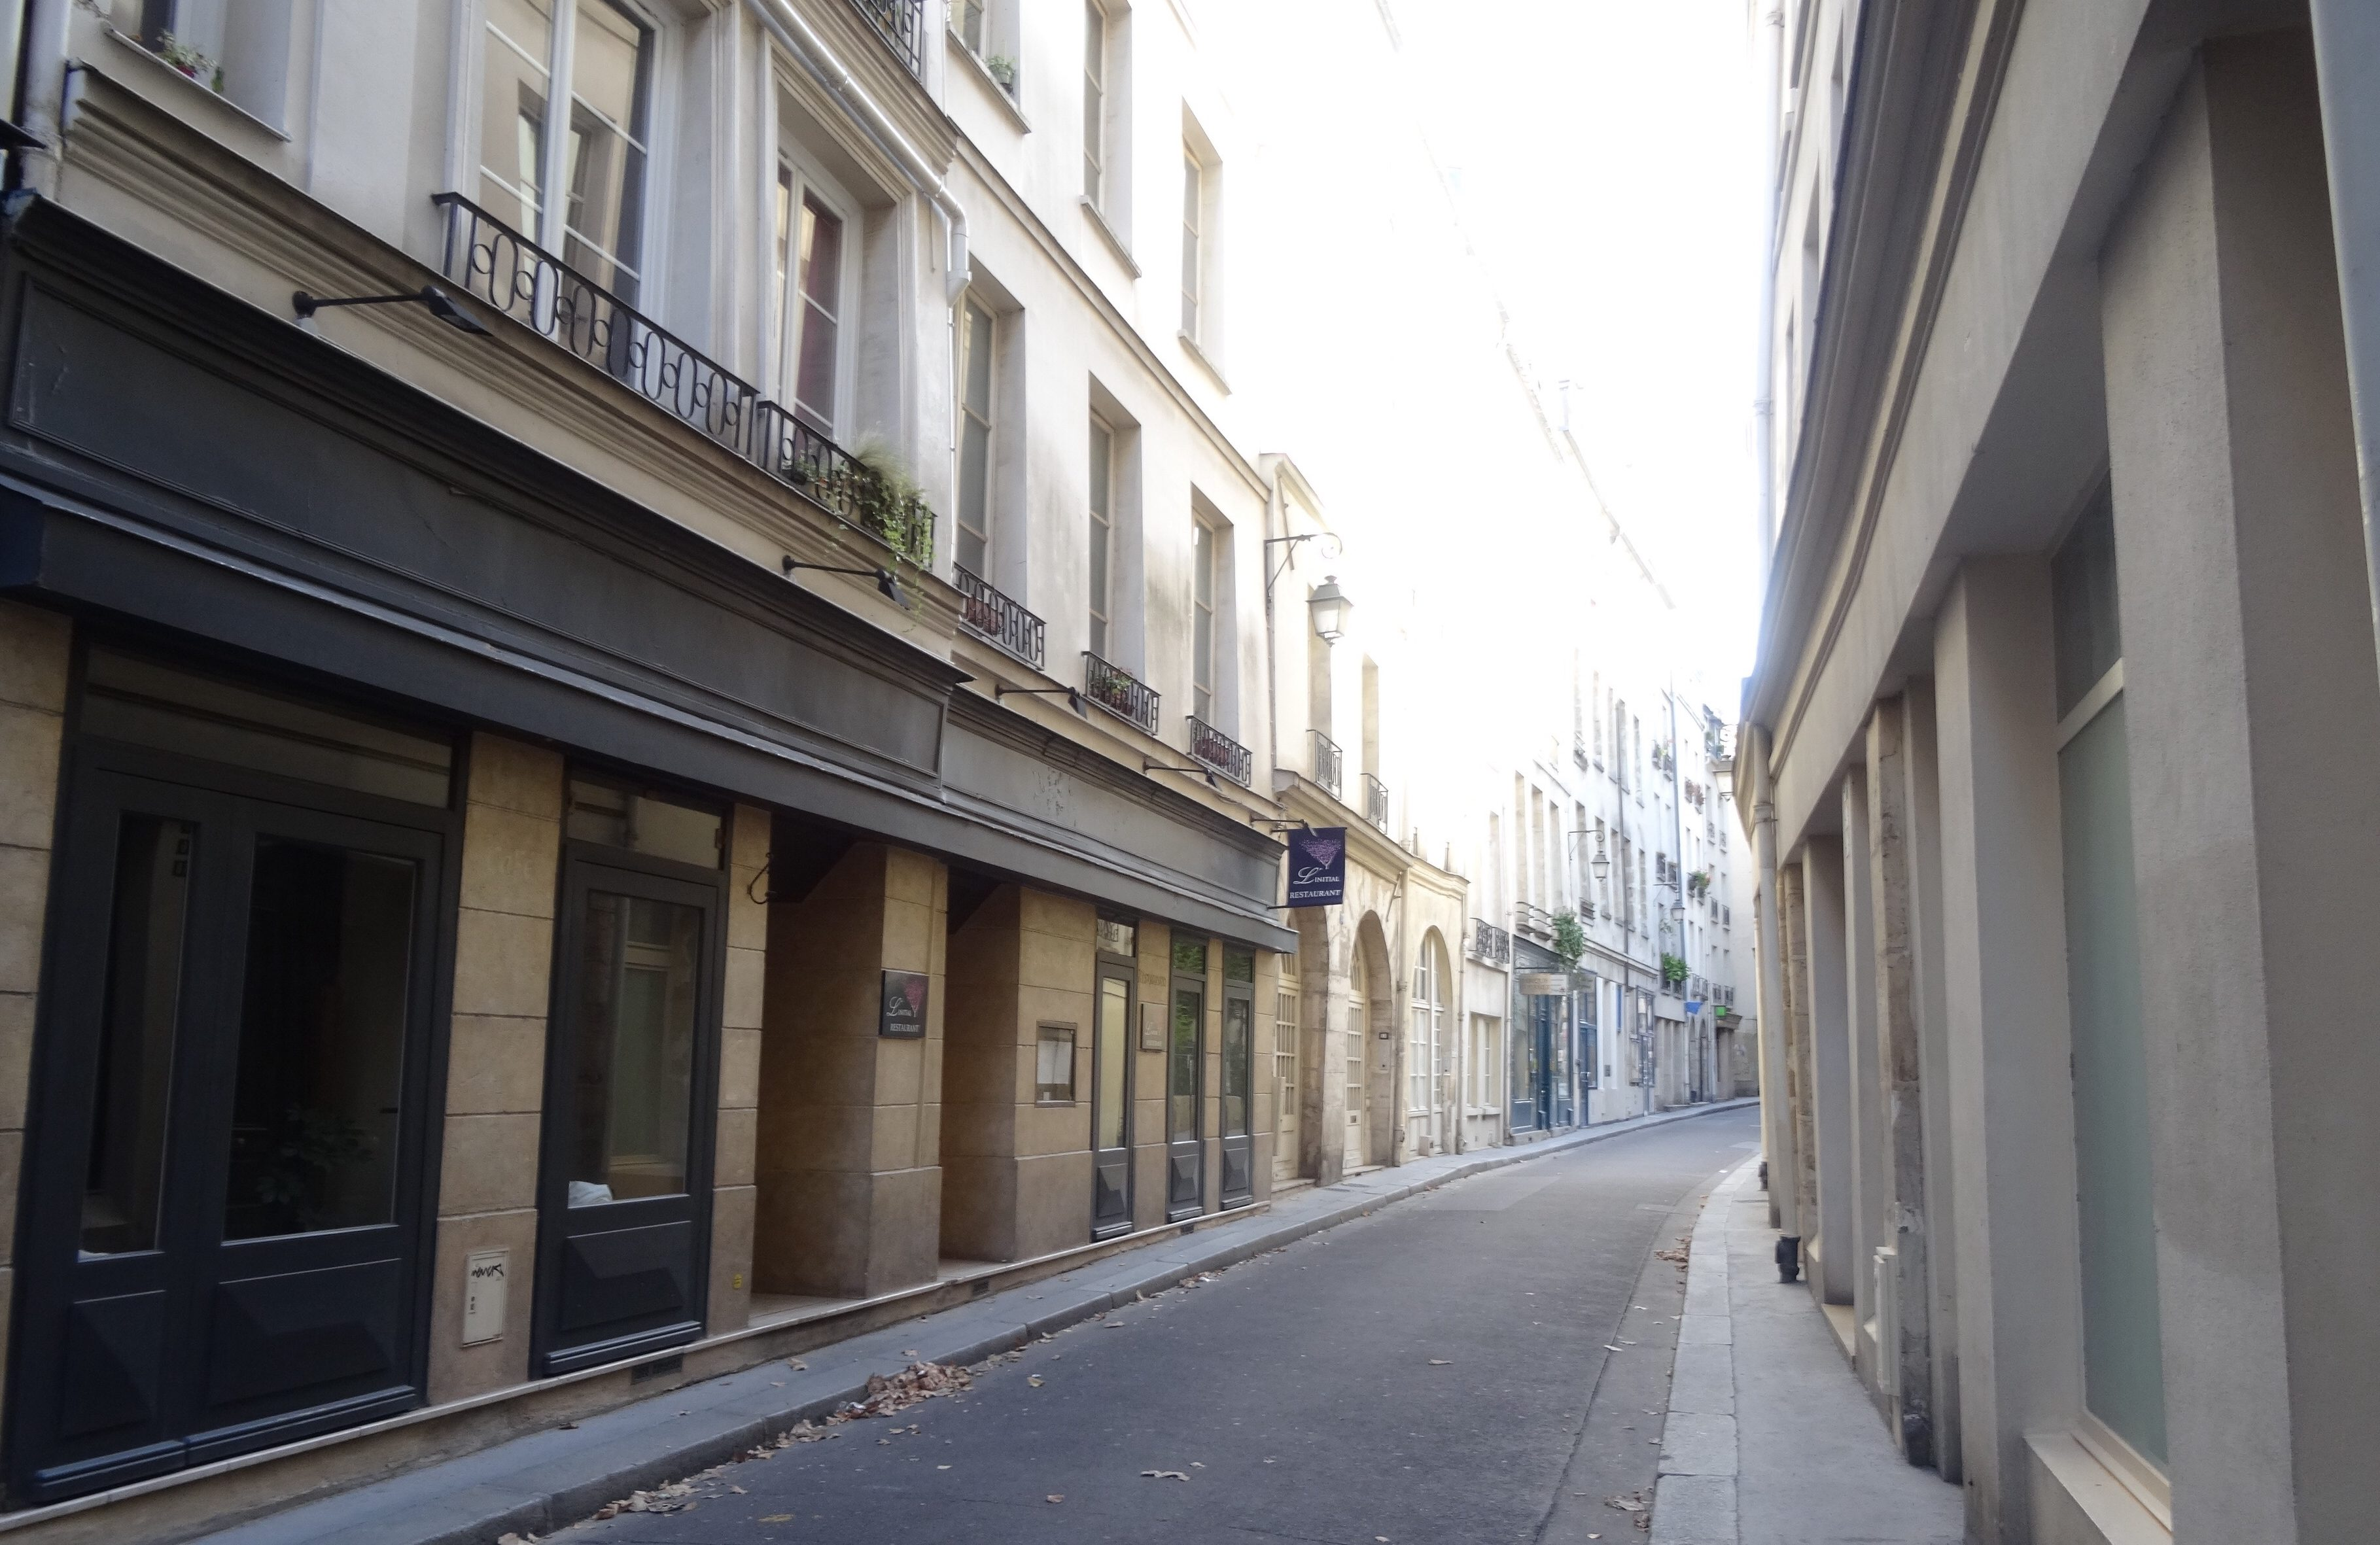 On the street where you live! We rented an apartment in the Latin Quarter, just steps away from Notre Dame. The Rue de Verdon was home for a week and the neighborhood was outstanding.